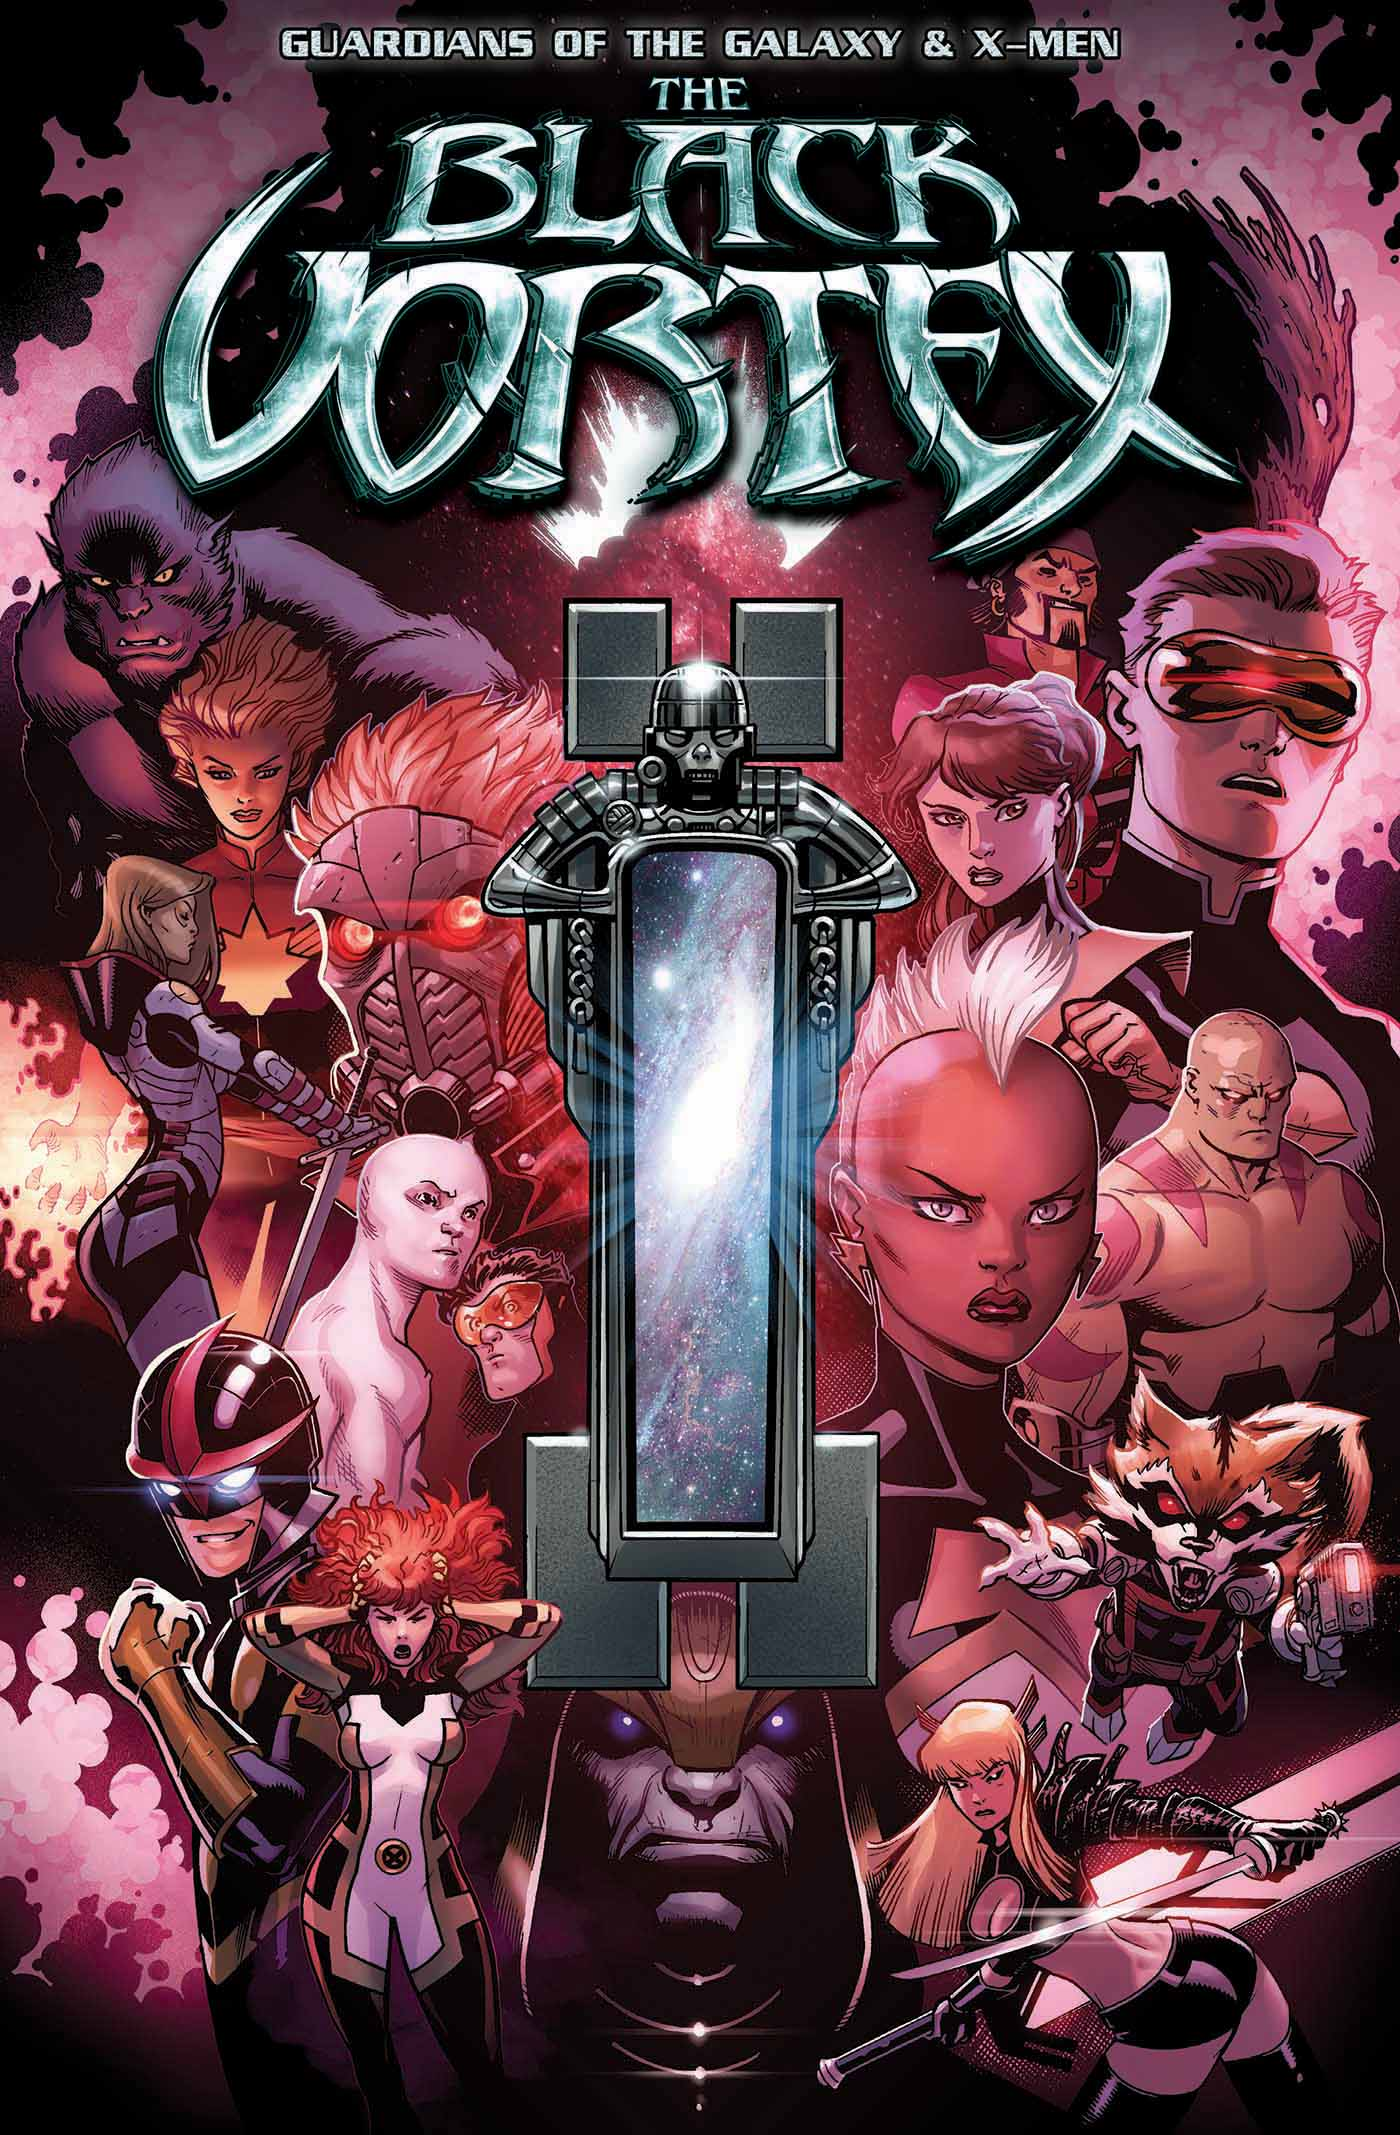 Guardians_of_the_Galaxy_&_X-Men_The_Black_Vortex_Alpha